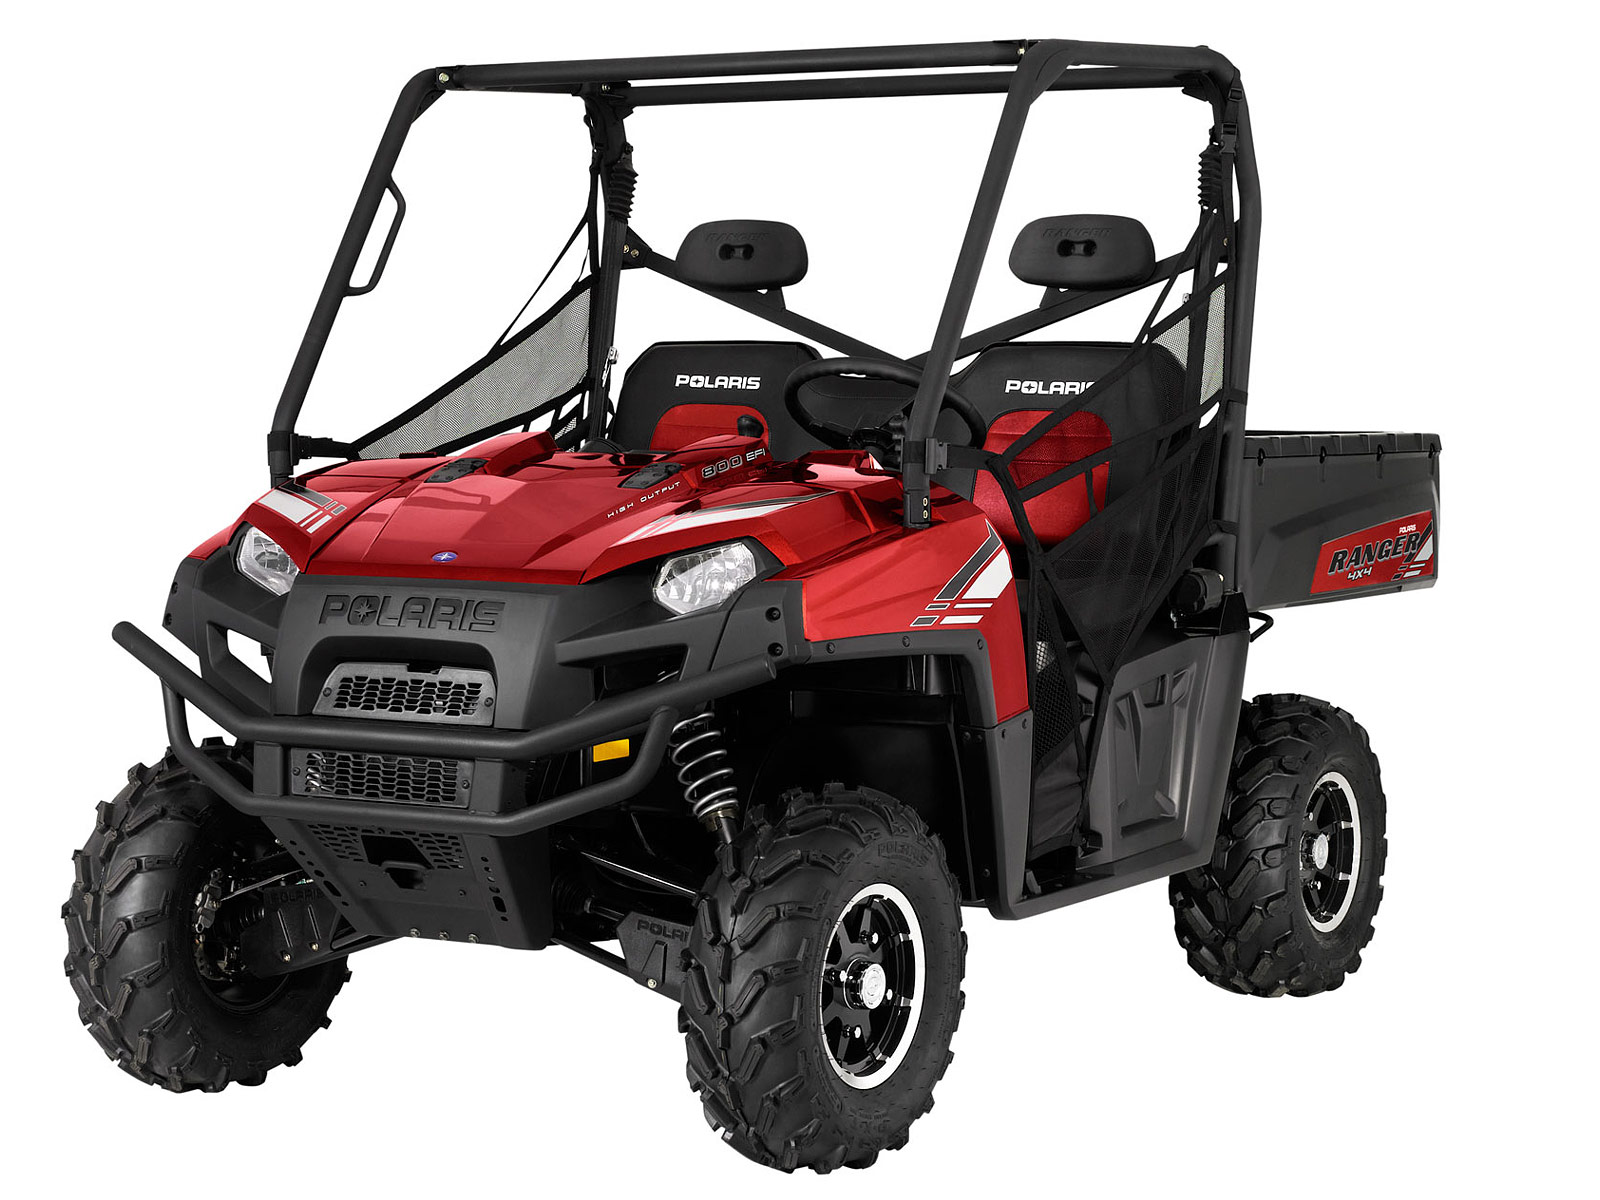 2013 polaris ranger 800ho efi atv insurance information pictures. Black Bedroom Furniture Sets. Home Design Ideas